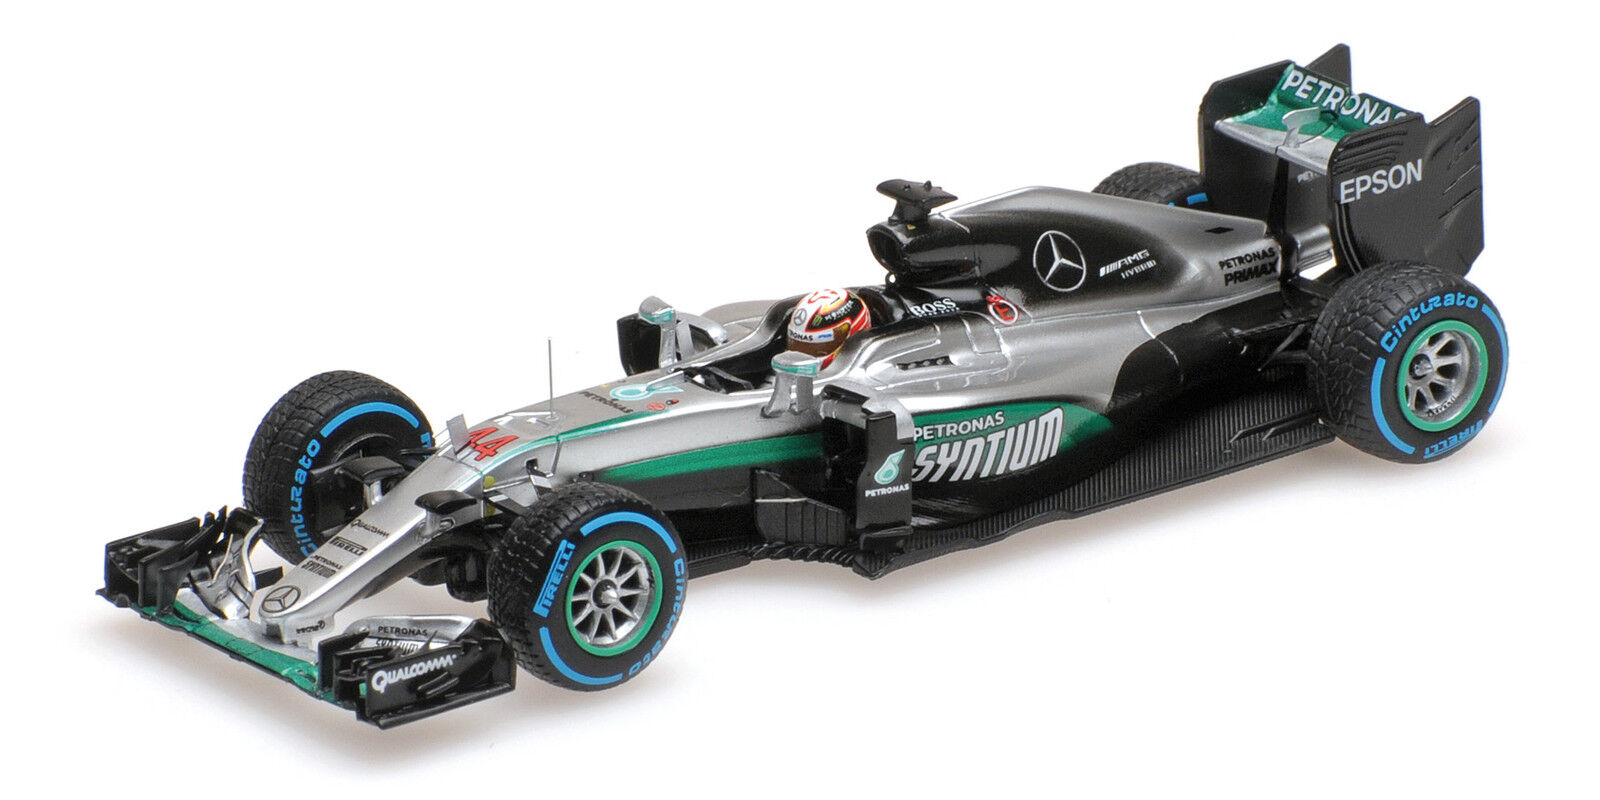 MERCEDES AMG w07 ibrido LEWIS HAMILTON WINNER BRAZILIAN GP 2016 1 43 Model